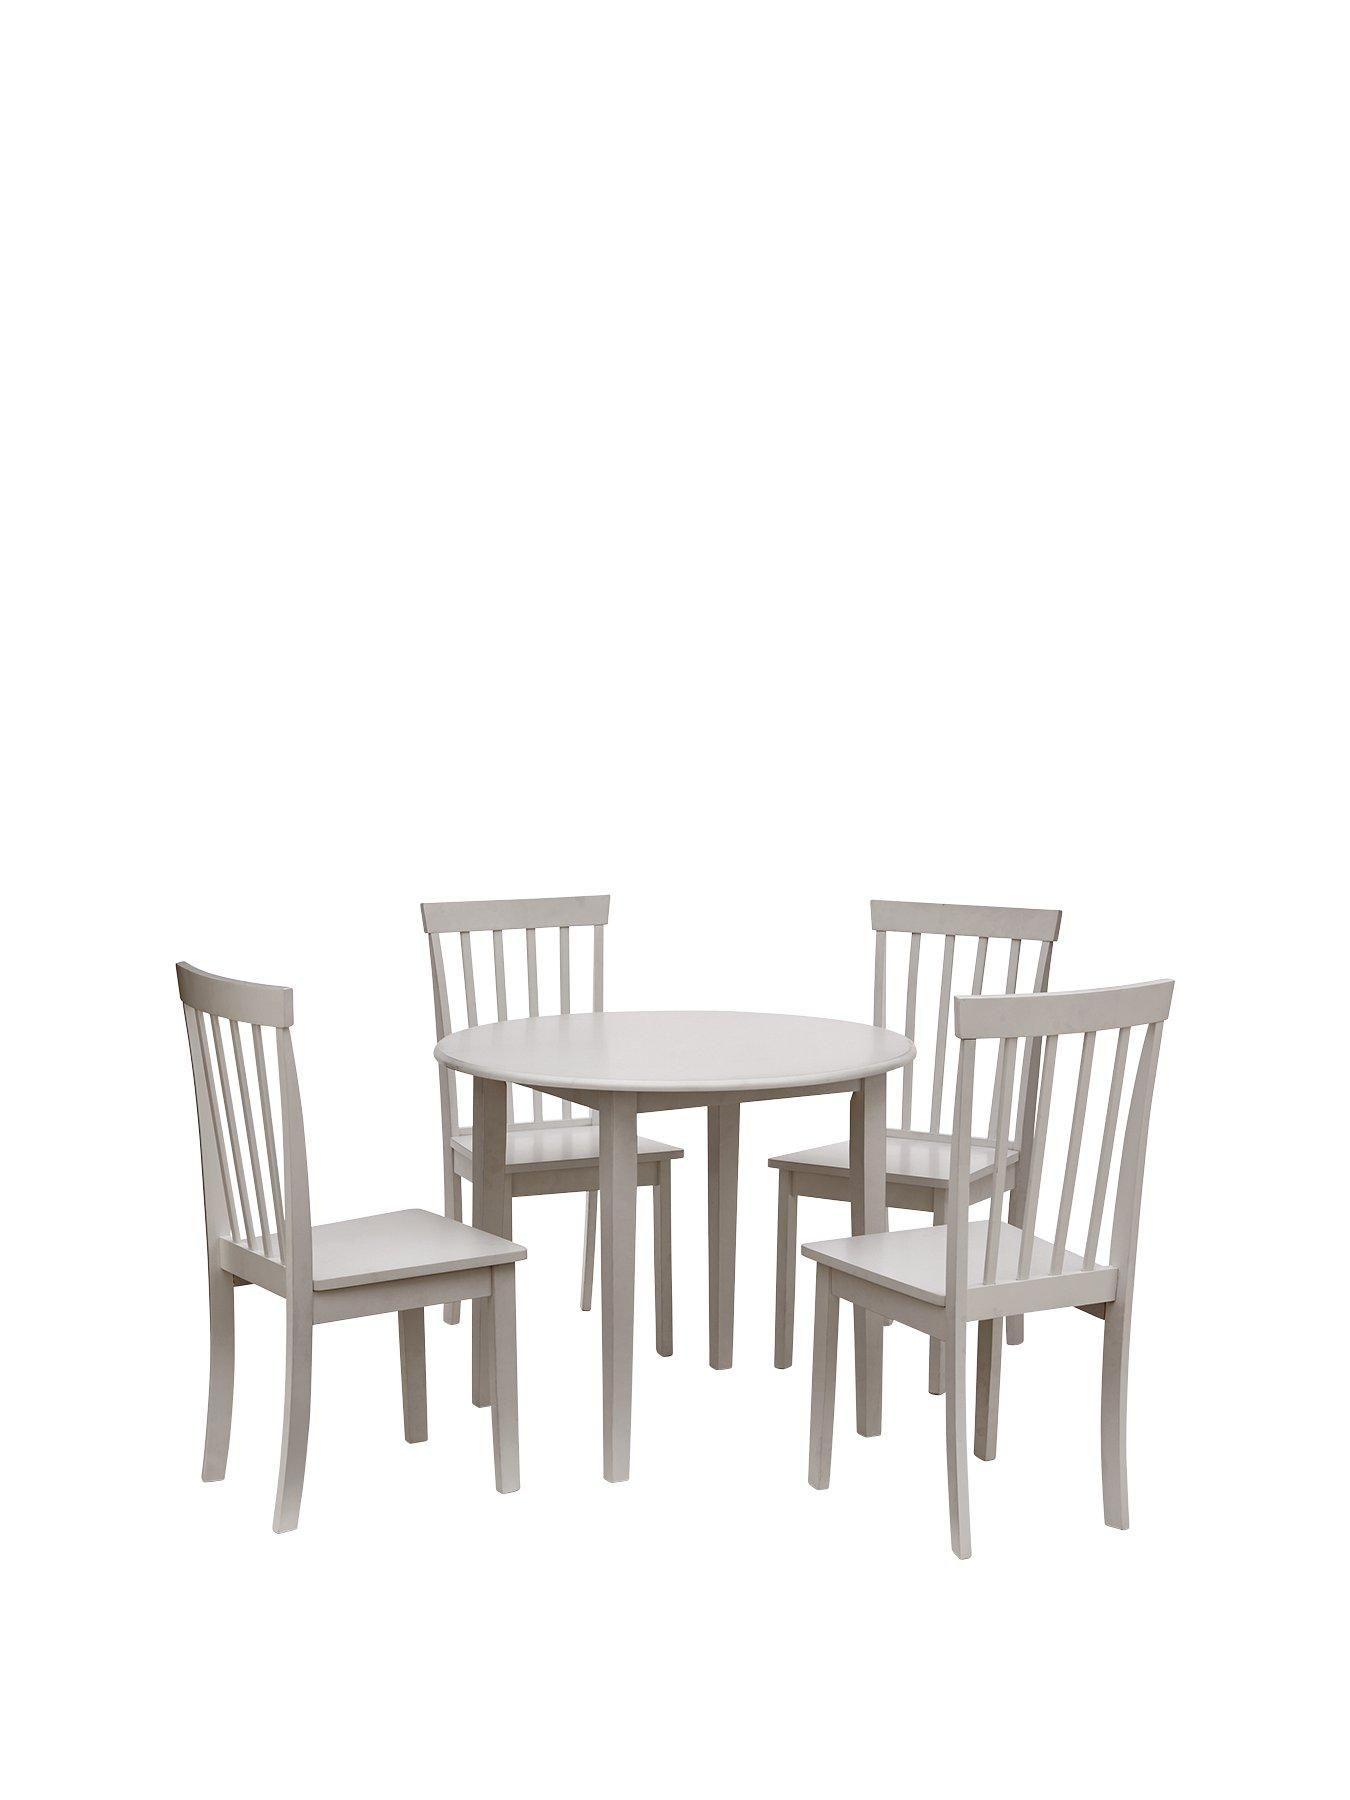 New Sophia 73 8 Cm Round Dining Table 4 Chairs Dining Table